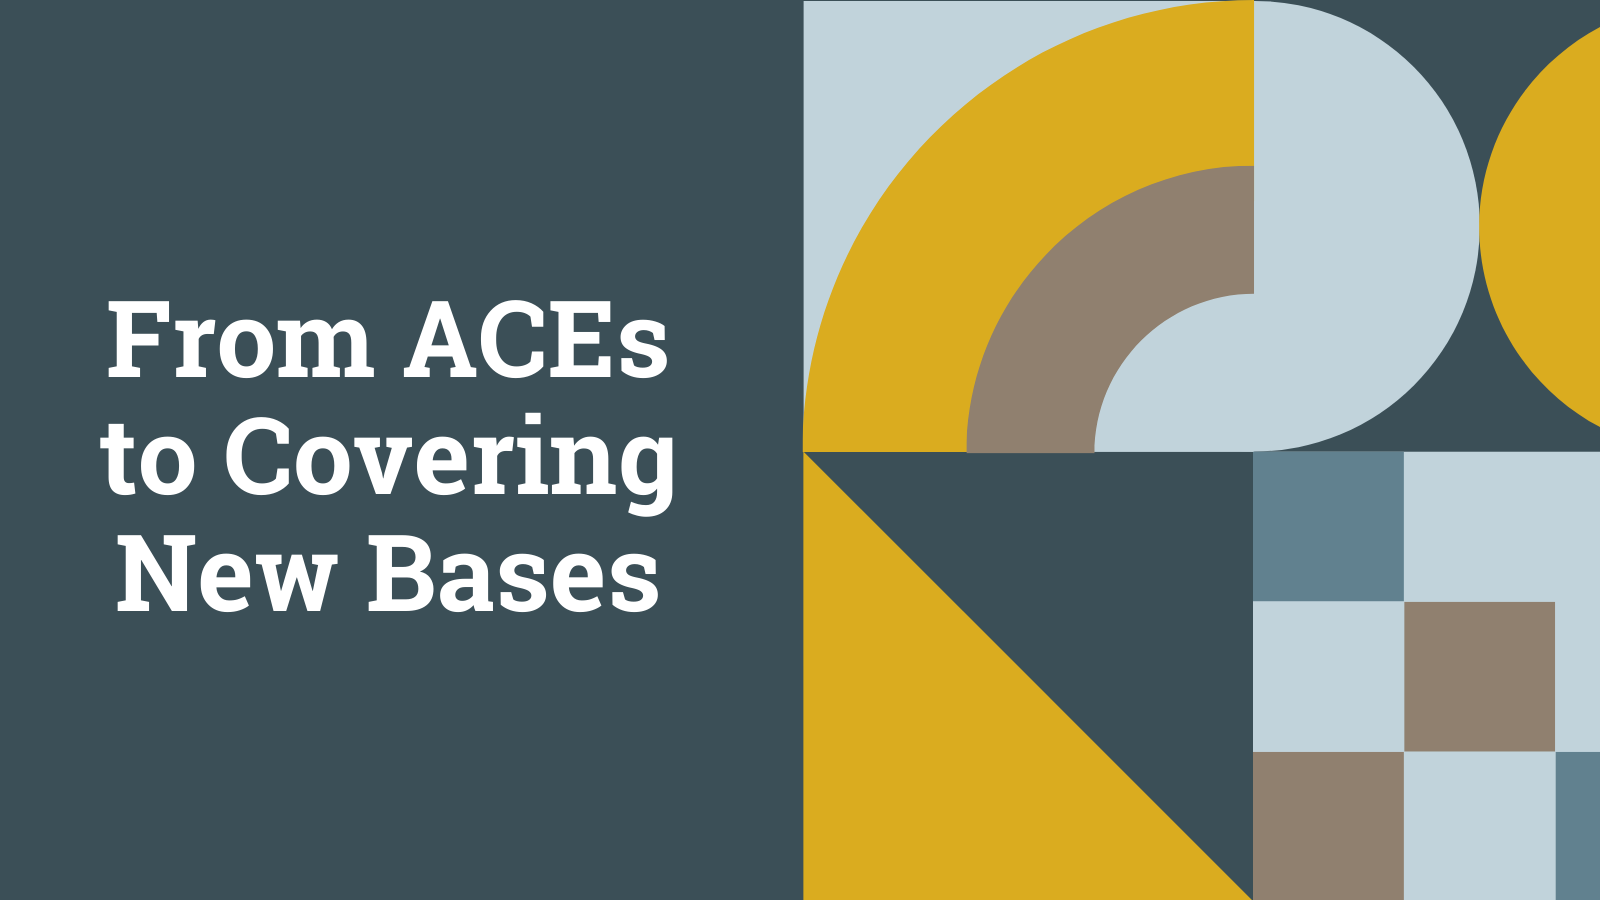 From ACEs to Covering New Bases